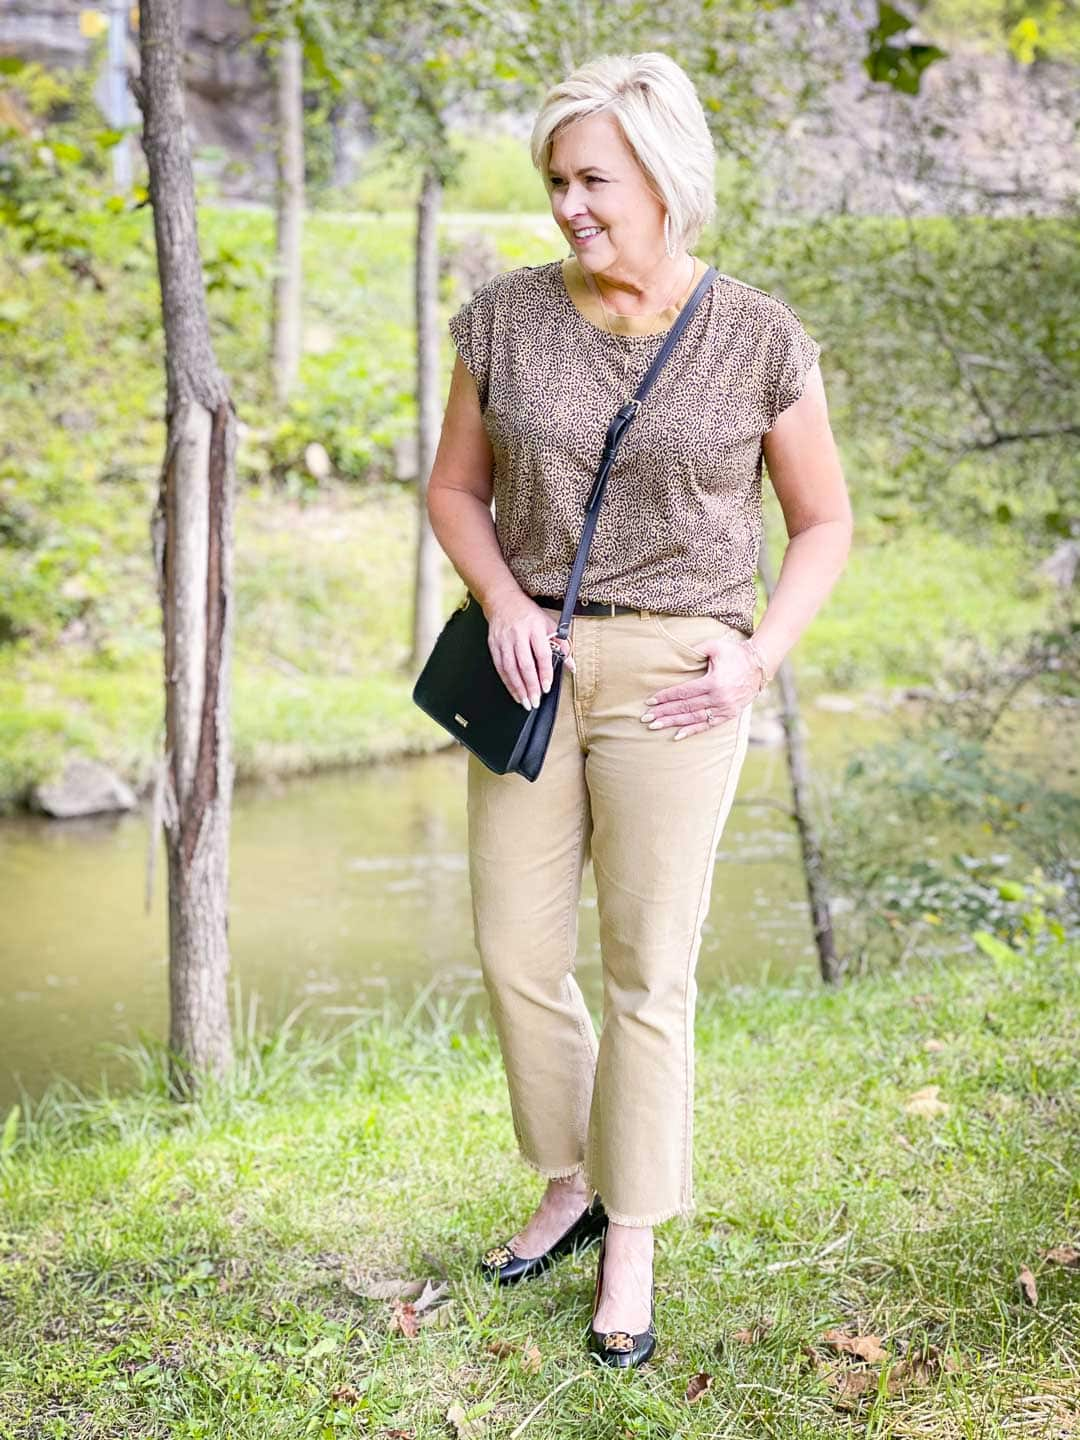 Over 40 Fashion Blogger, Tania Stephens is wearing animal print for fall, tan cropped jeans, and a black crossbody handbag